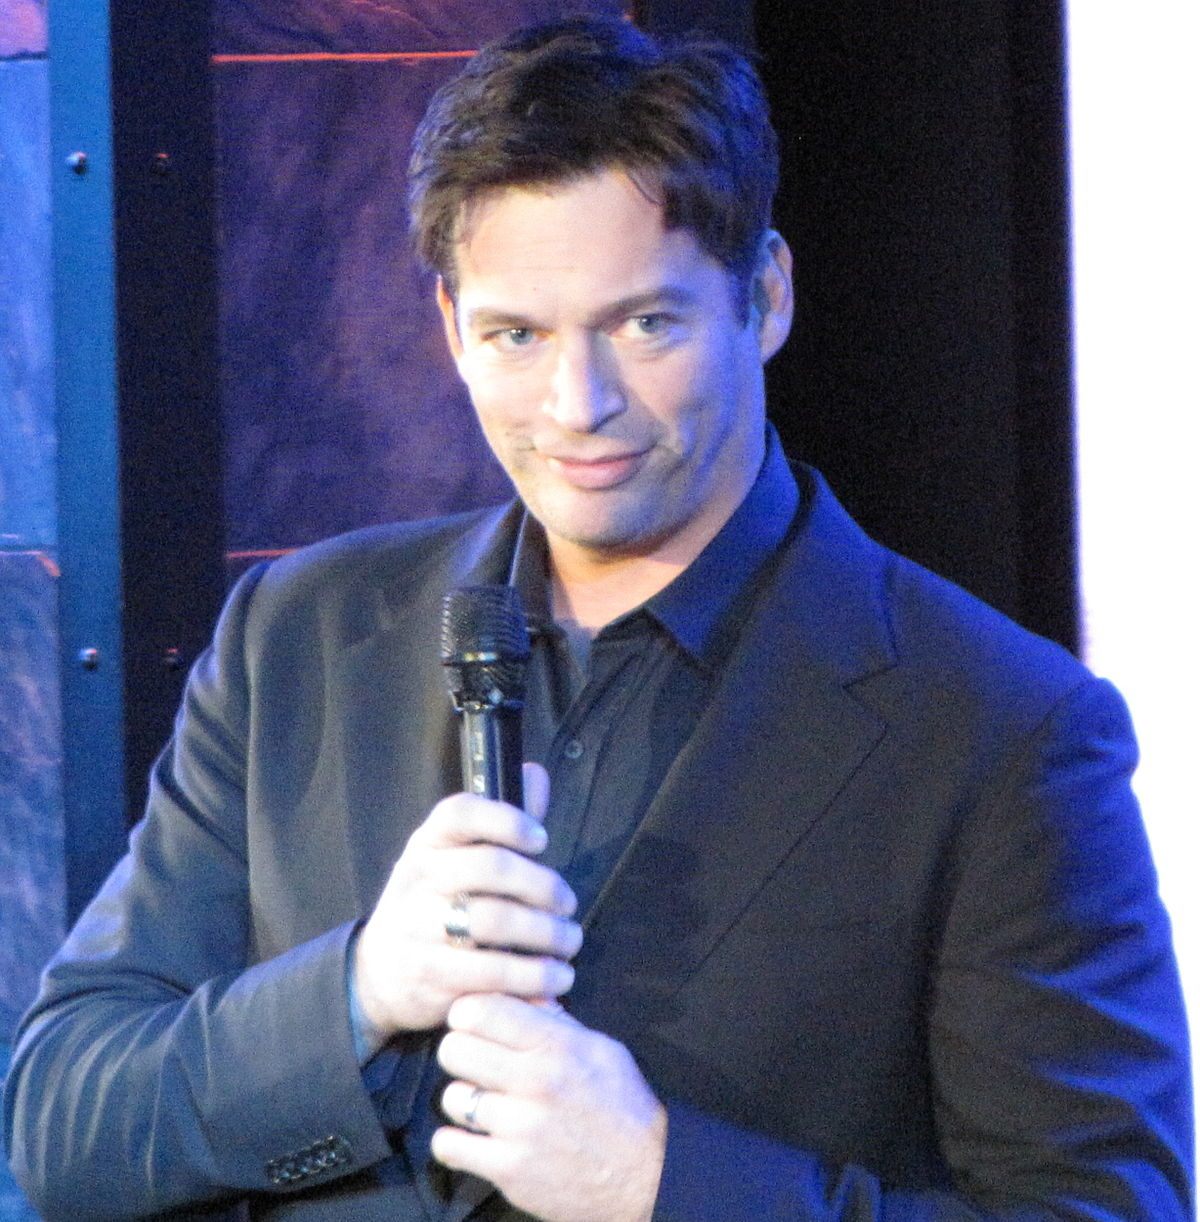 Harry Connick Jr. discography - Wikipedia